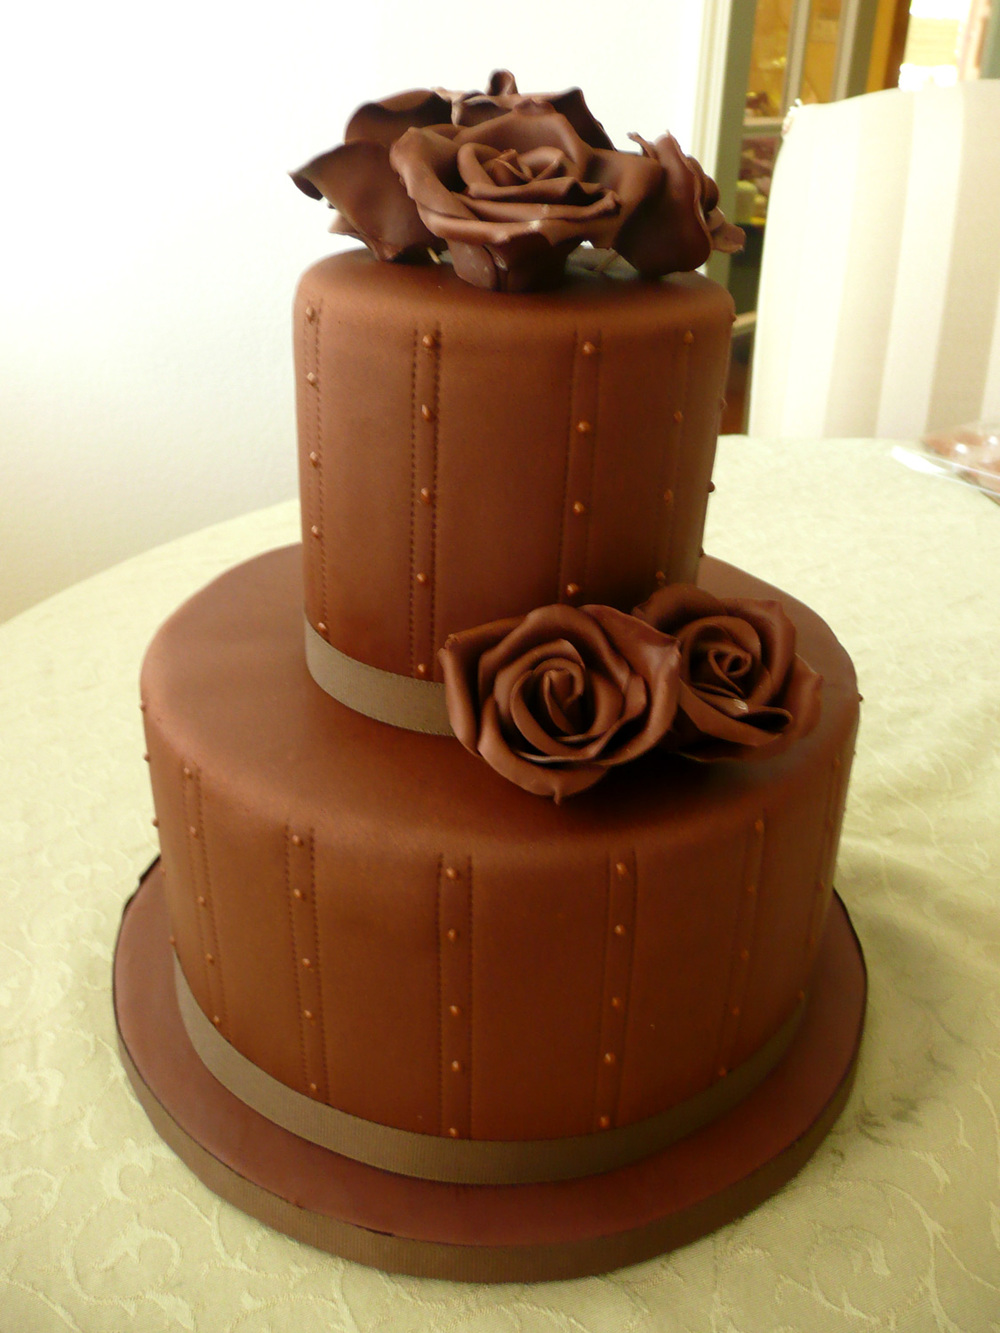 patisserie_angelica_fondant_chocolate.jpg